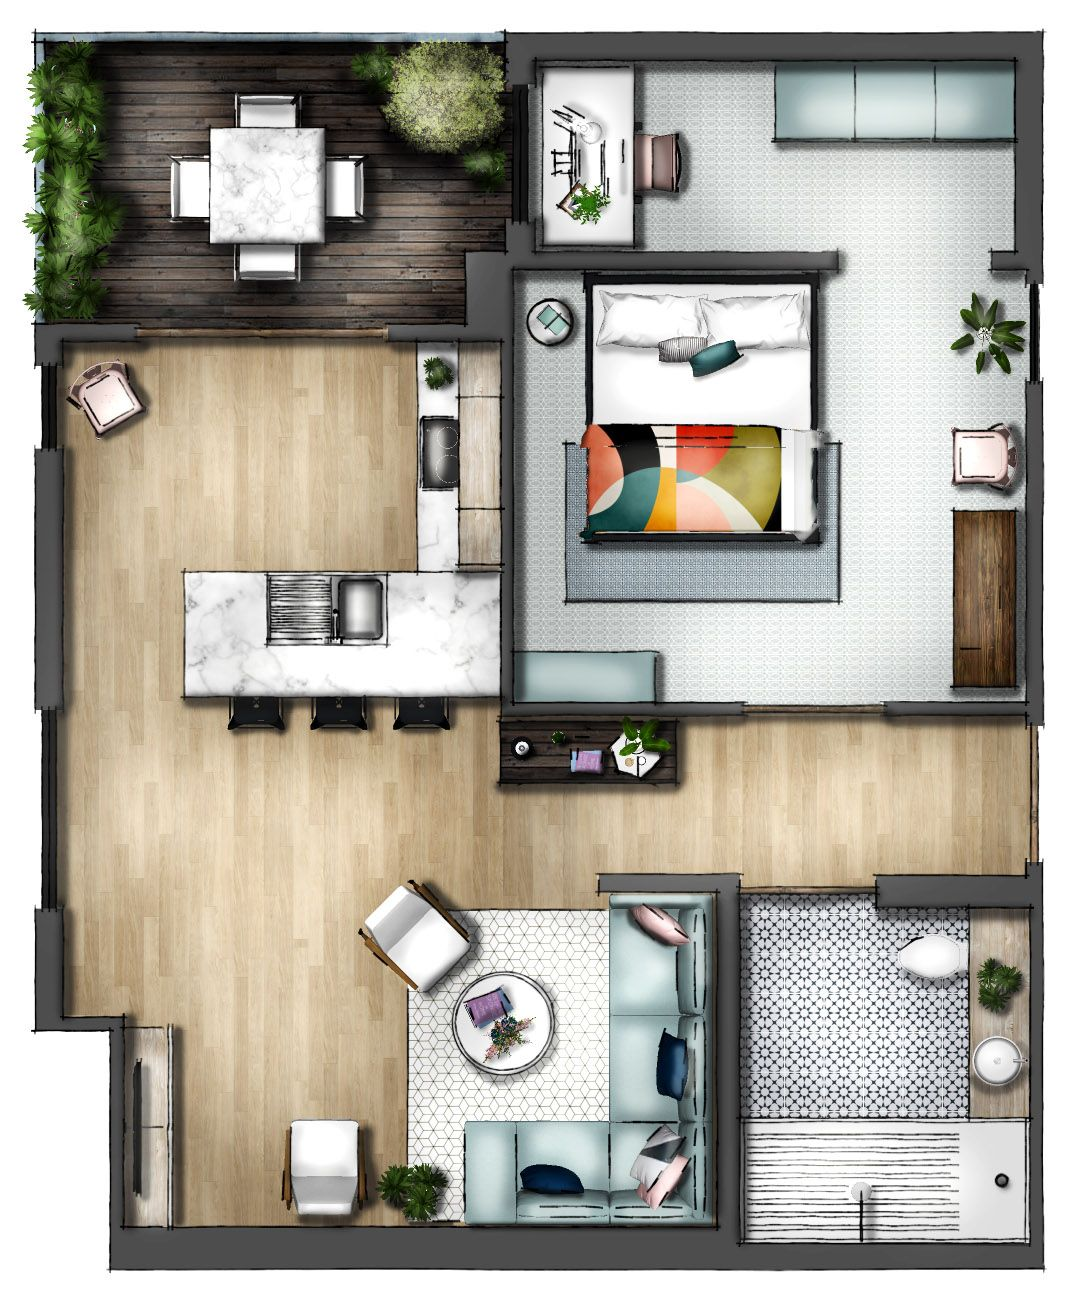 Rendered Floor Plan For Interior Design Rendered Floor Plan Interior Design Plan Interior Floor Plan